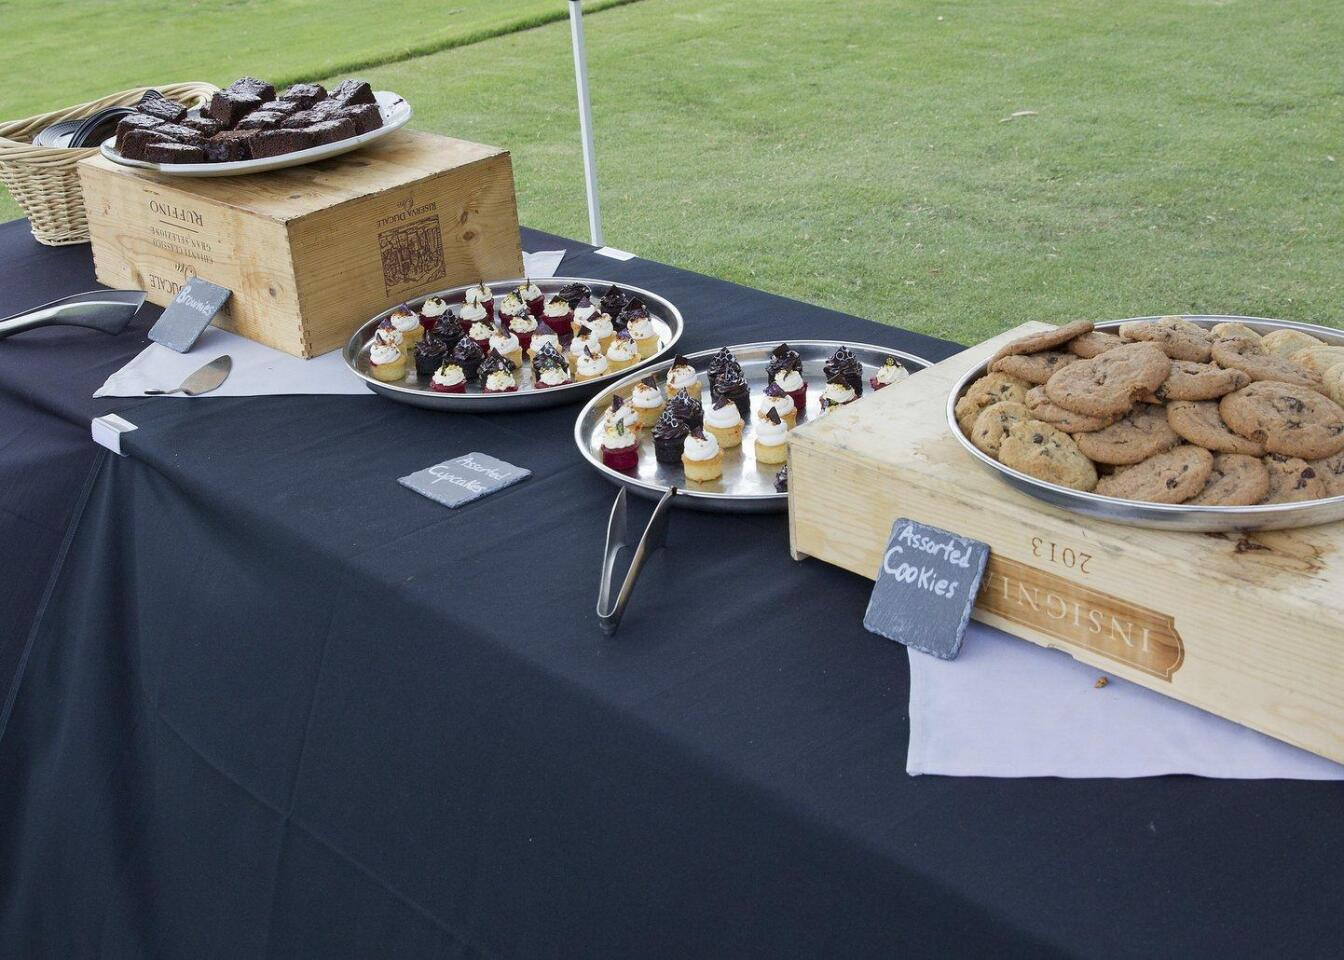 Family event at the RSF Golf Course driving range